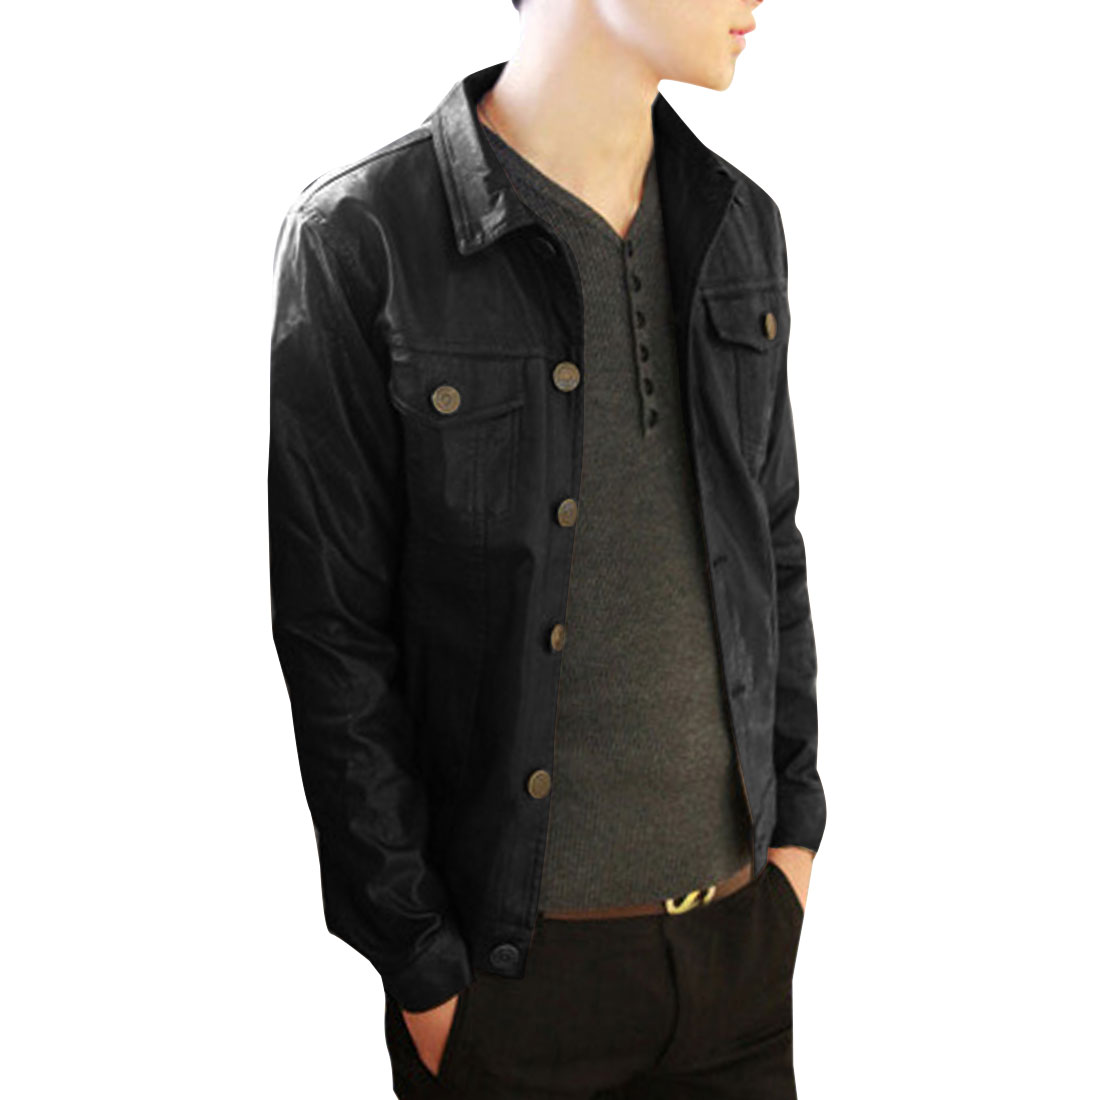 Point Collar Single Breasted Chic Black Leather Coat For Men S